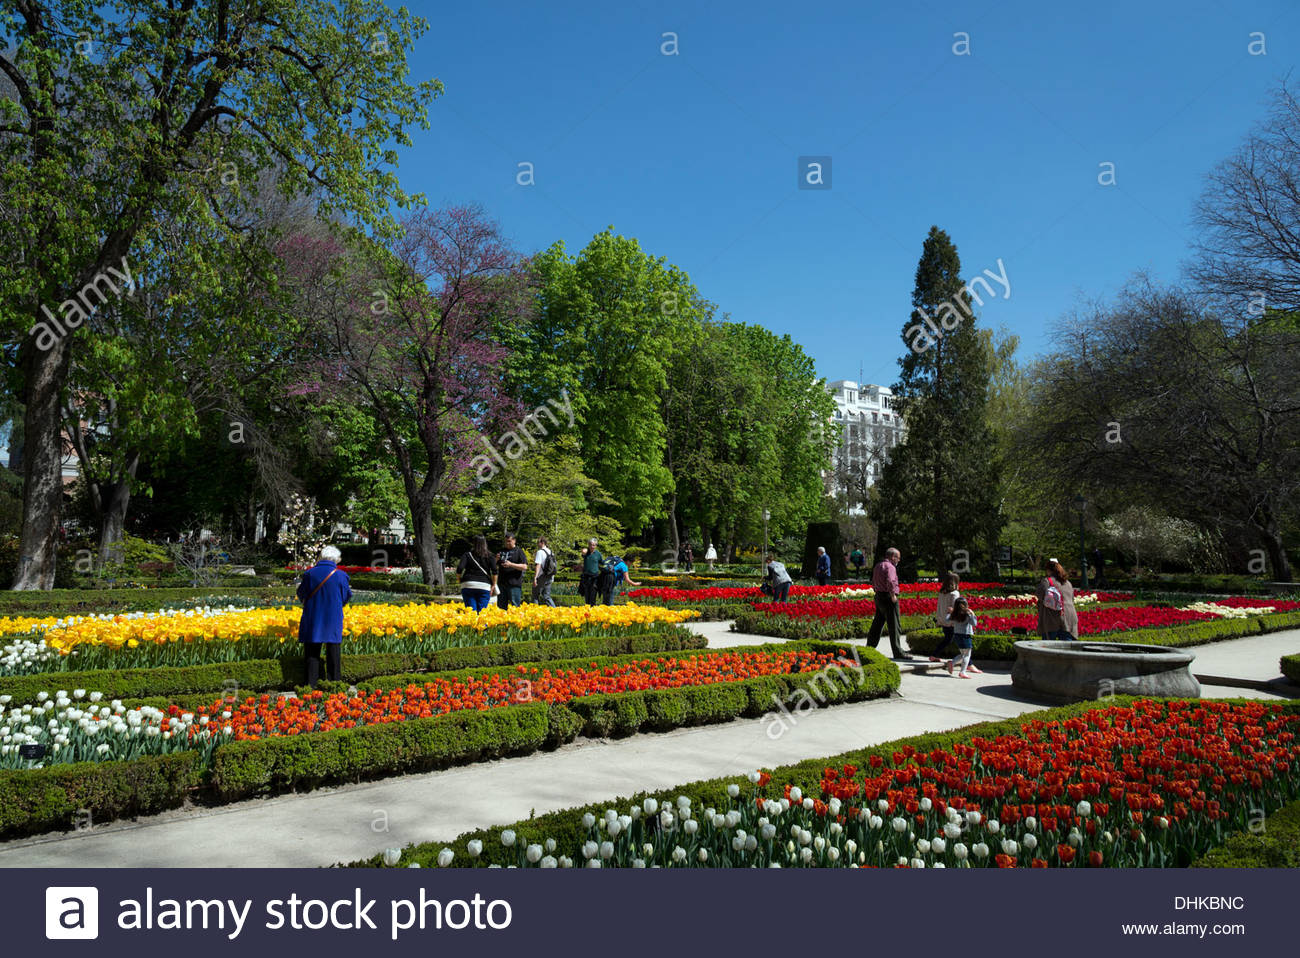 Tulips in the Royal Botanical Gardens, Madrid, Spain - Stock Image